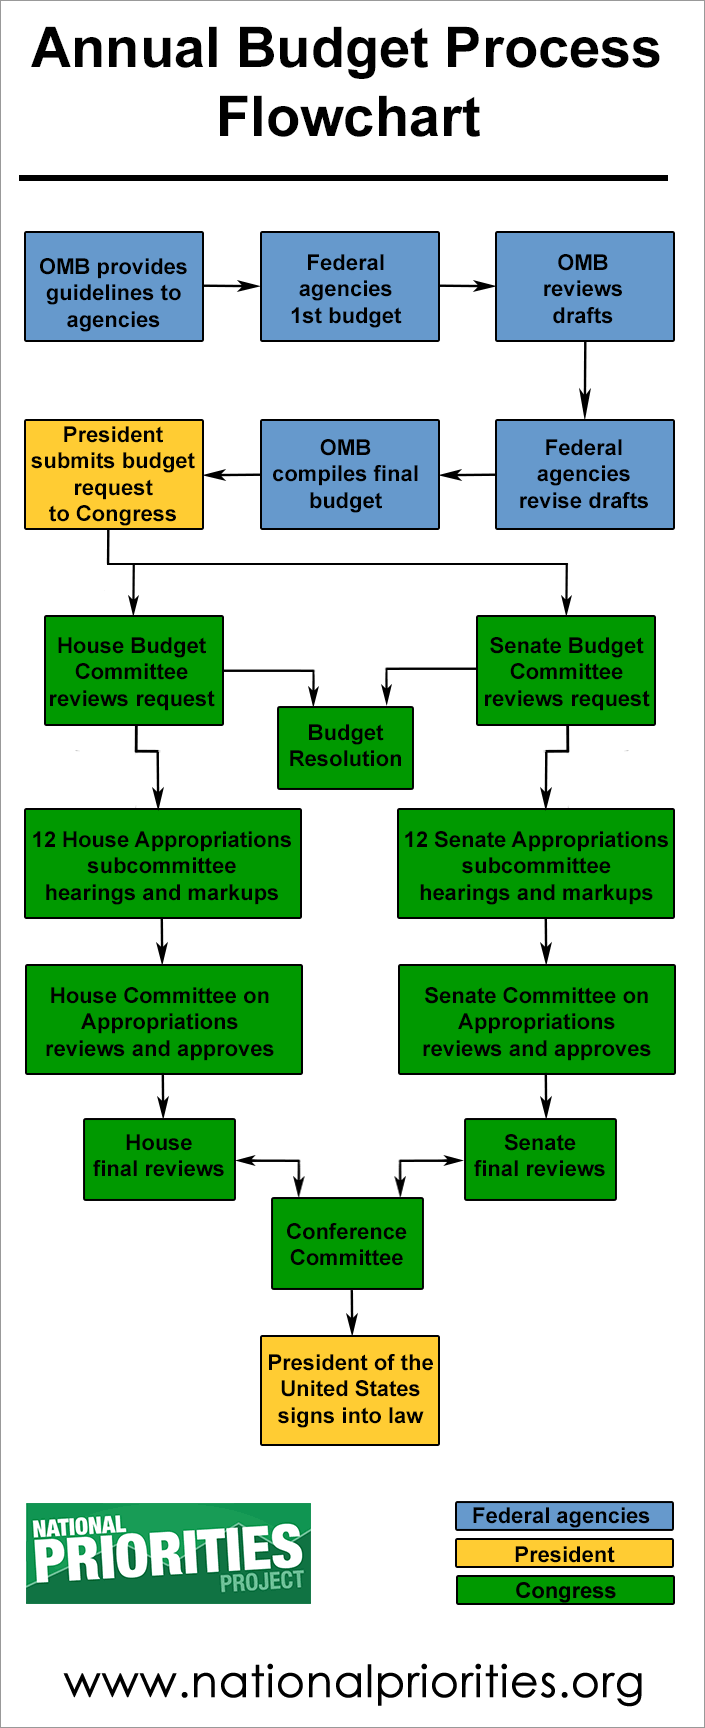 Annual Budget Process Flowchart